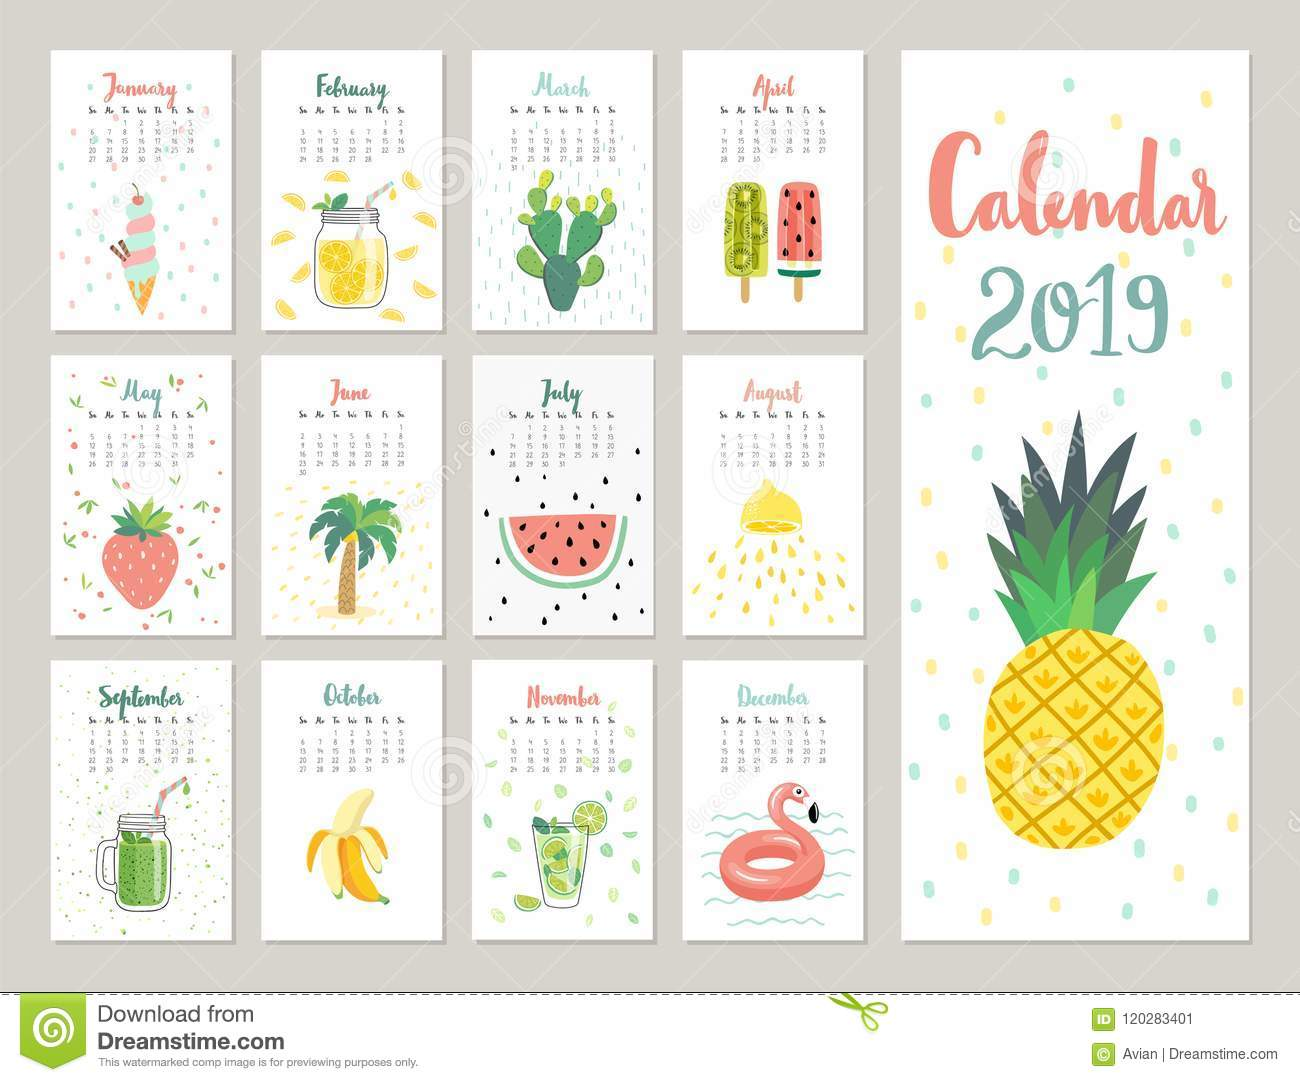 Calendar 2019 Cute Monthly Calendar With Lifestyle Objects Fruits